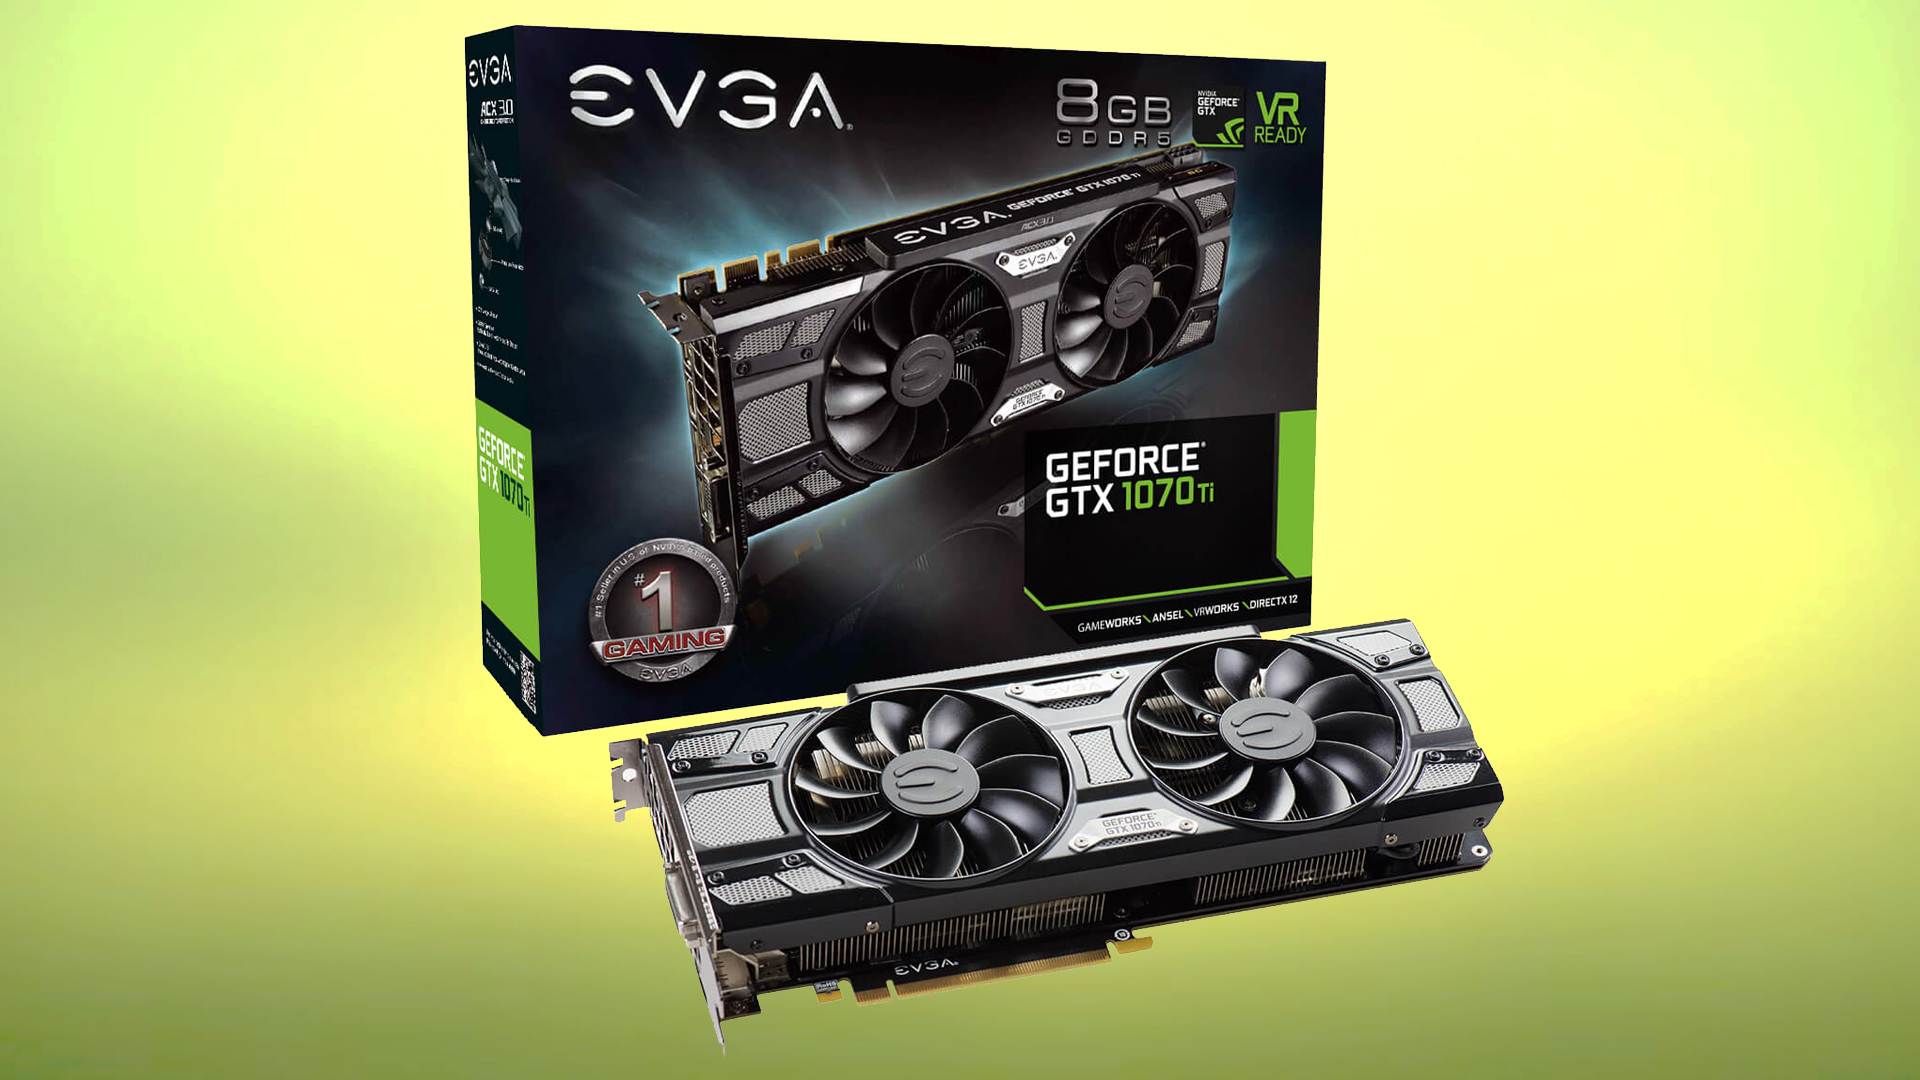 EVGA GeForce GTX 1070 Ti SC GAMING Black Edition Graphics Card